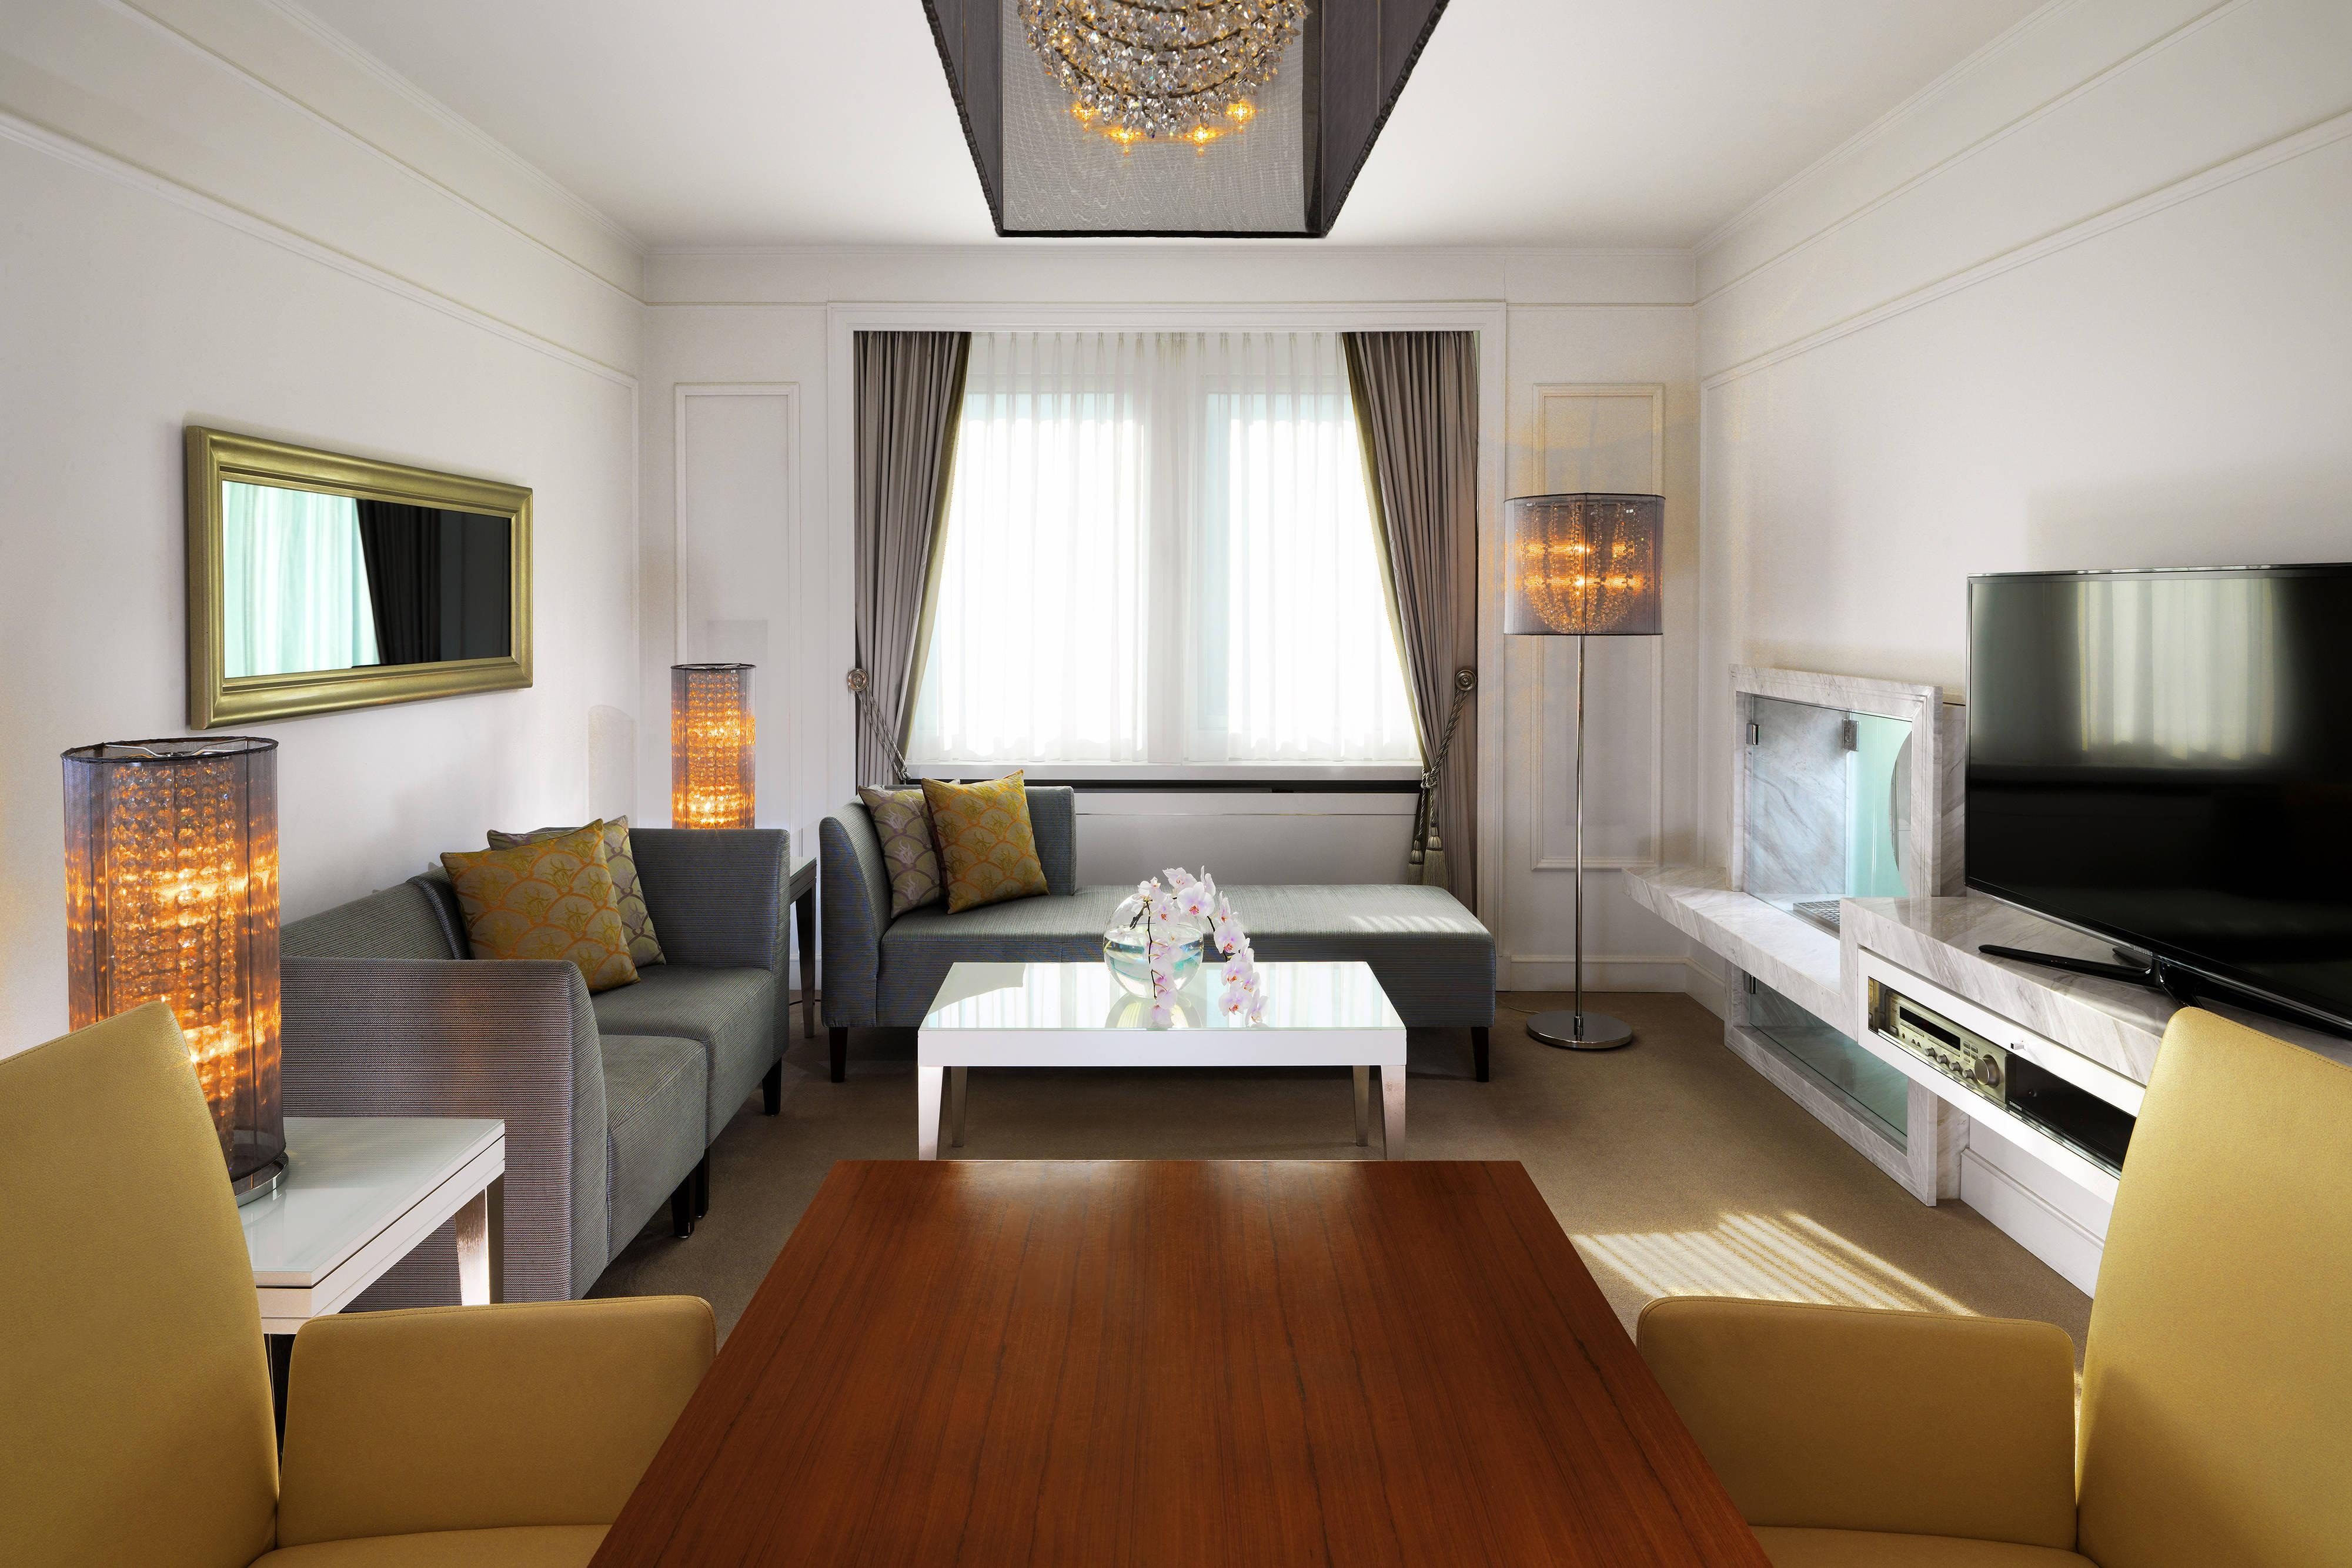 Living area with open fireplace at The Westin Grand hotel Berlin